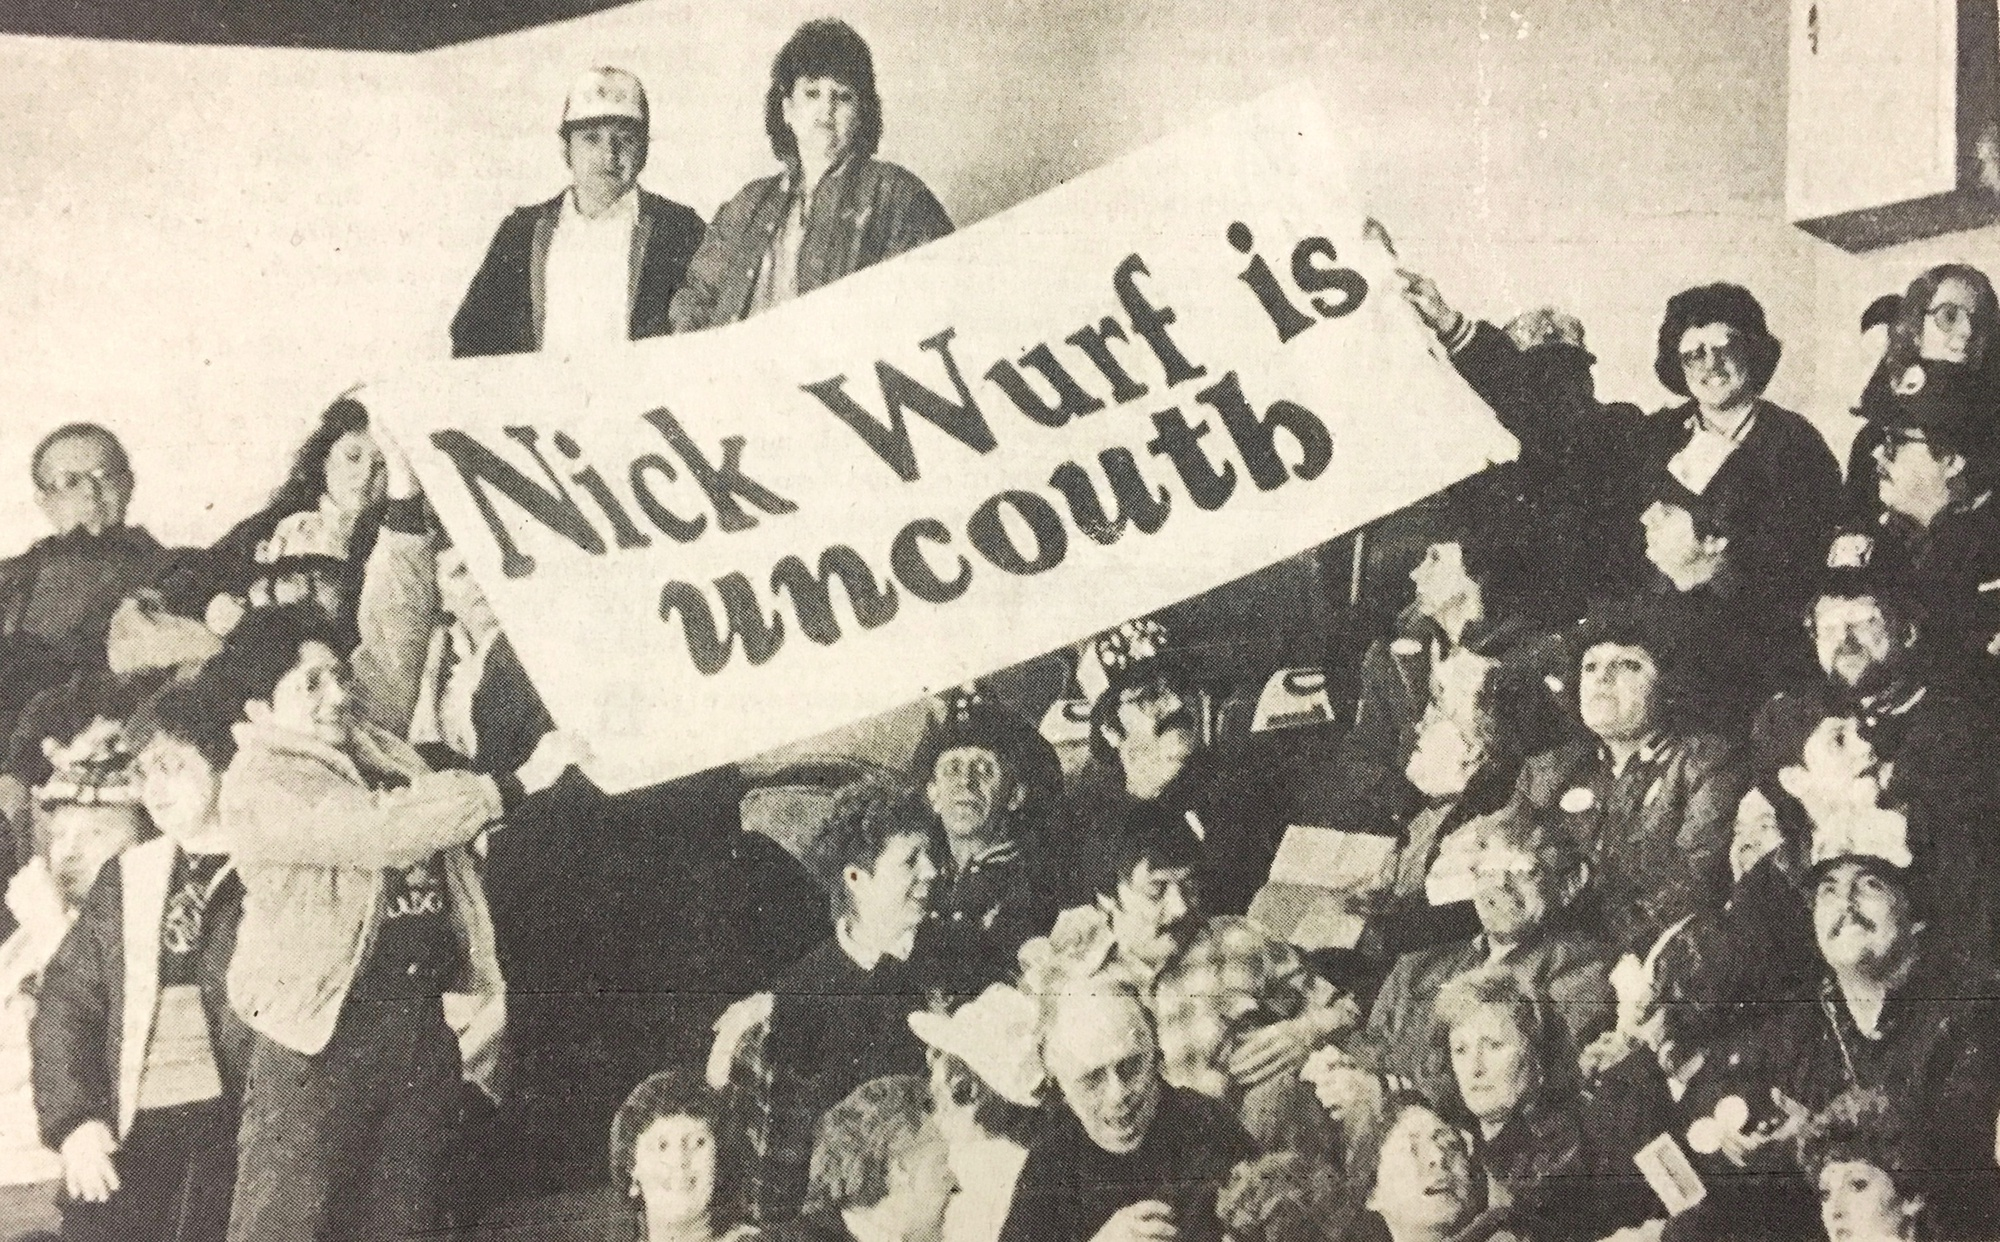 Minnesota-Duluth fans heckled Nick Wurf throughout the night as the Harvard men's hockey team squared off against the Bulldogs in the spring of 1985.